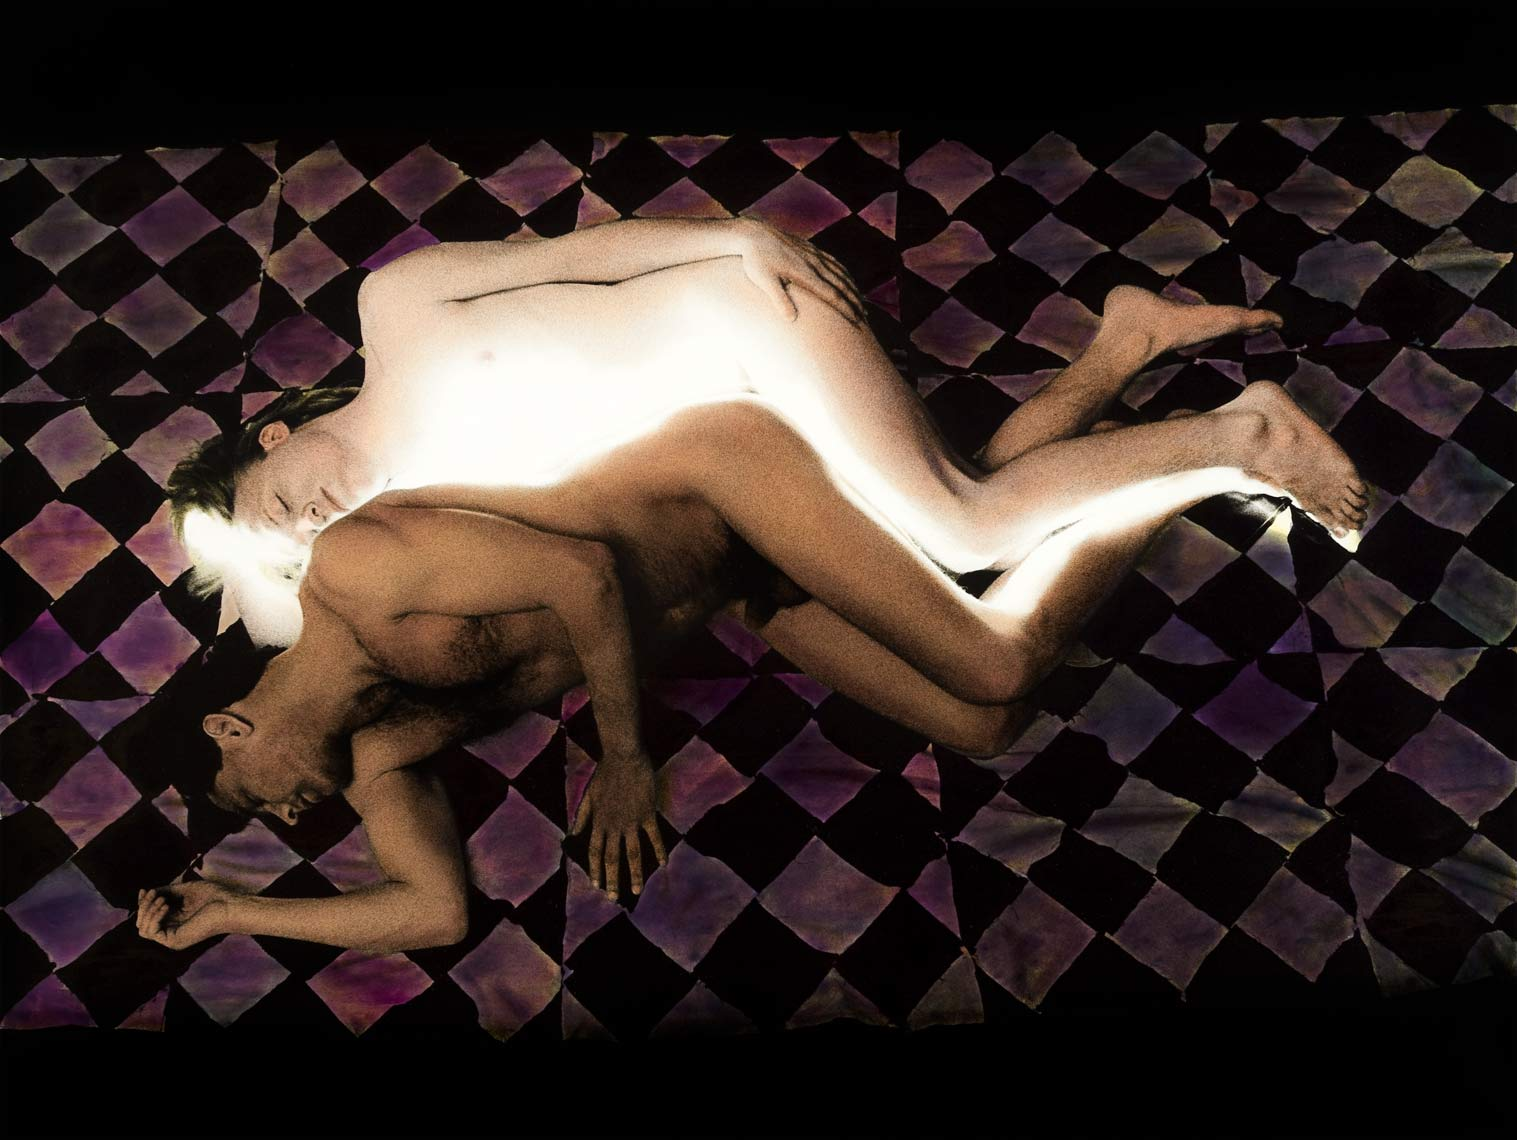 David Lebe; Spooning, 1986, male nude, light drawing, hand colored photograph